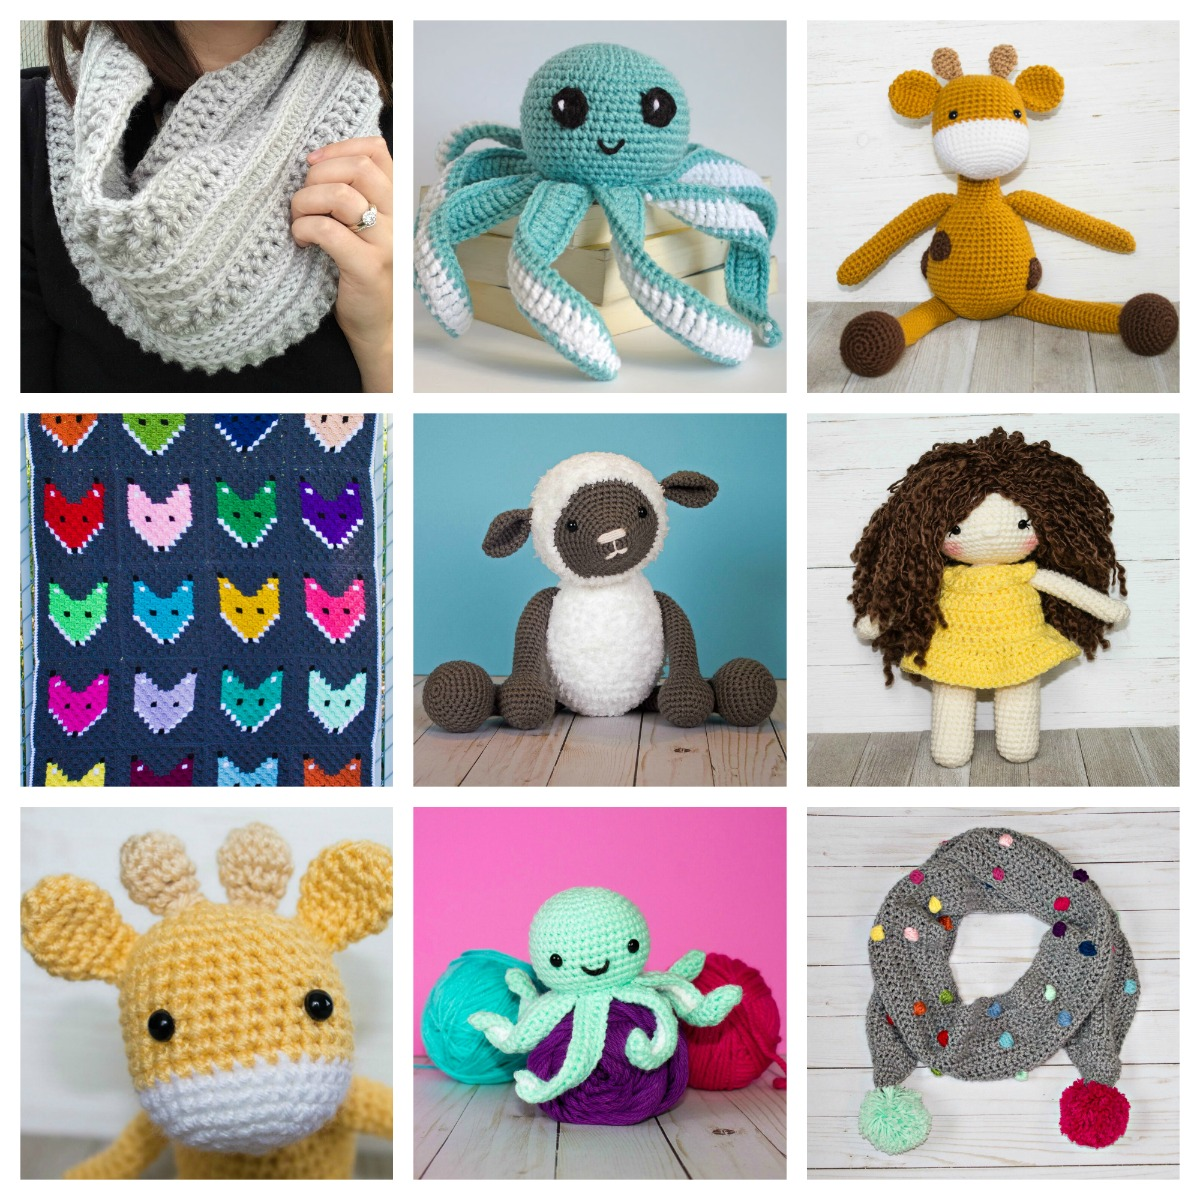 2a498fa5b47 How to Make and Sell Crochet Patterns - thefriendlyredfox.com